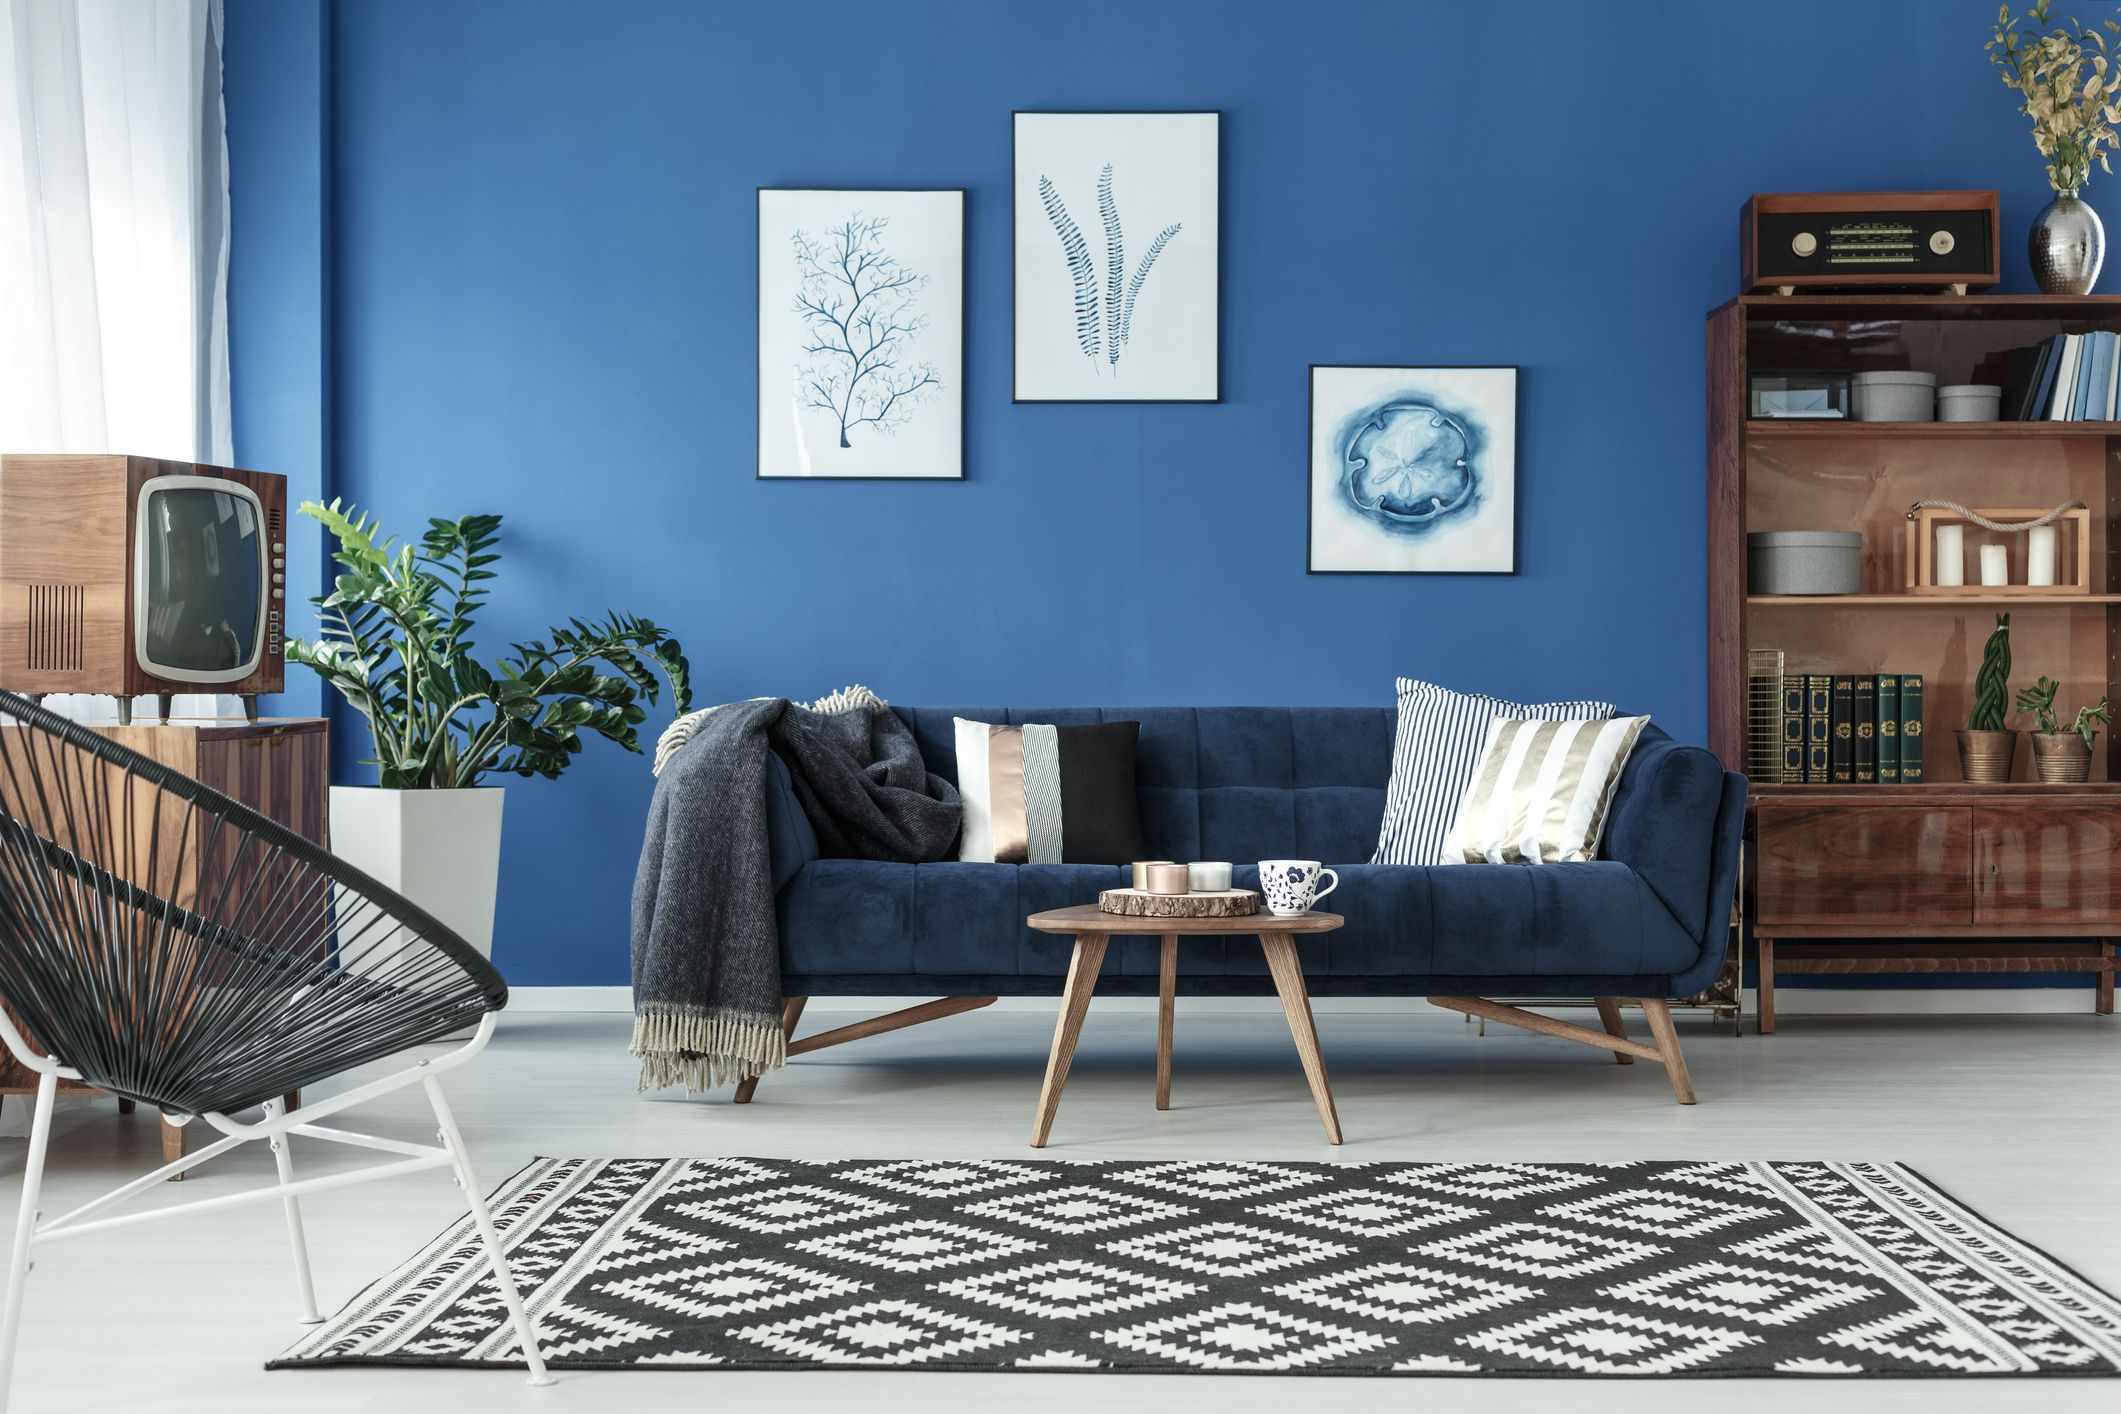 The Best Paint Colors for 2020, According to Interior Designers